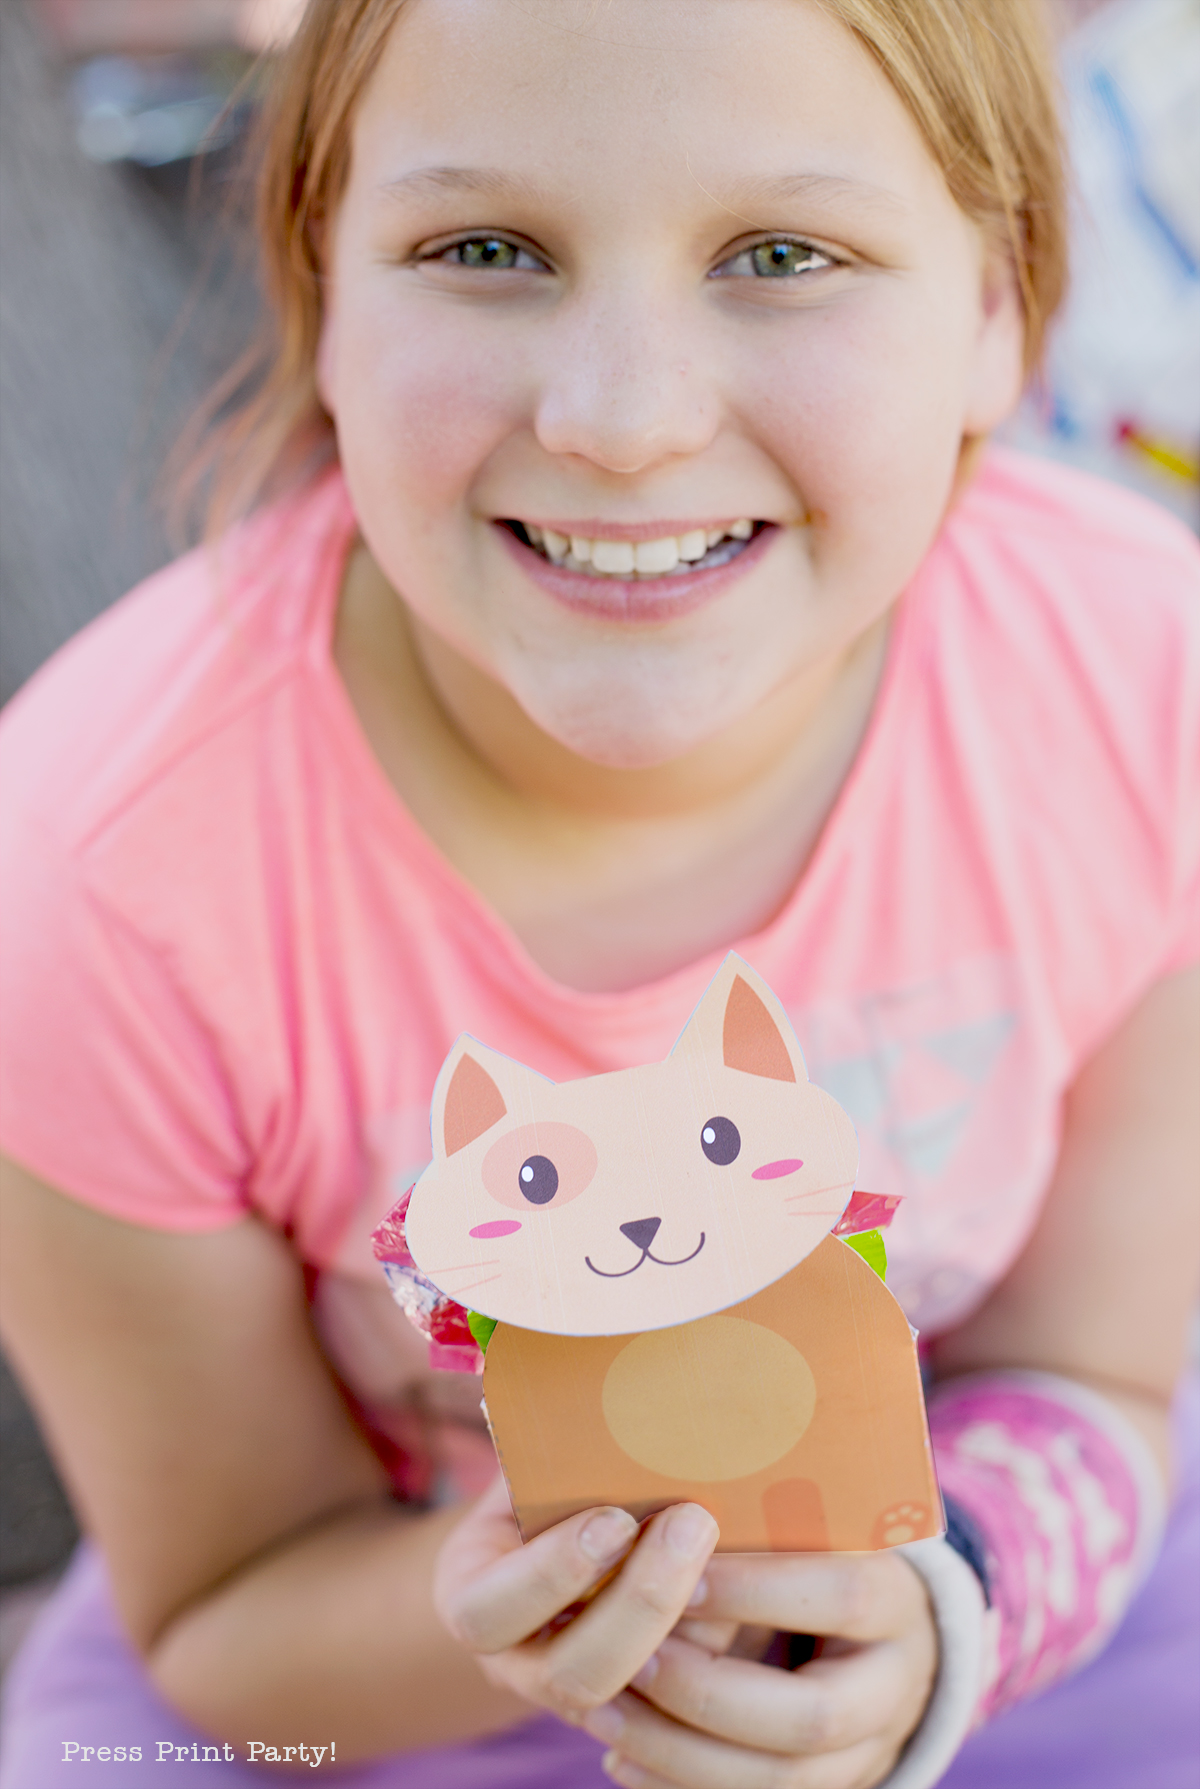 Tabby Cat Party Decorations and Printables, Kitty Party, Cat theme birthday party by Press Print Party!